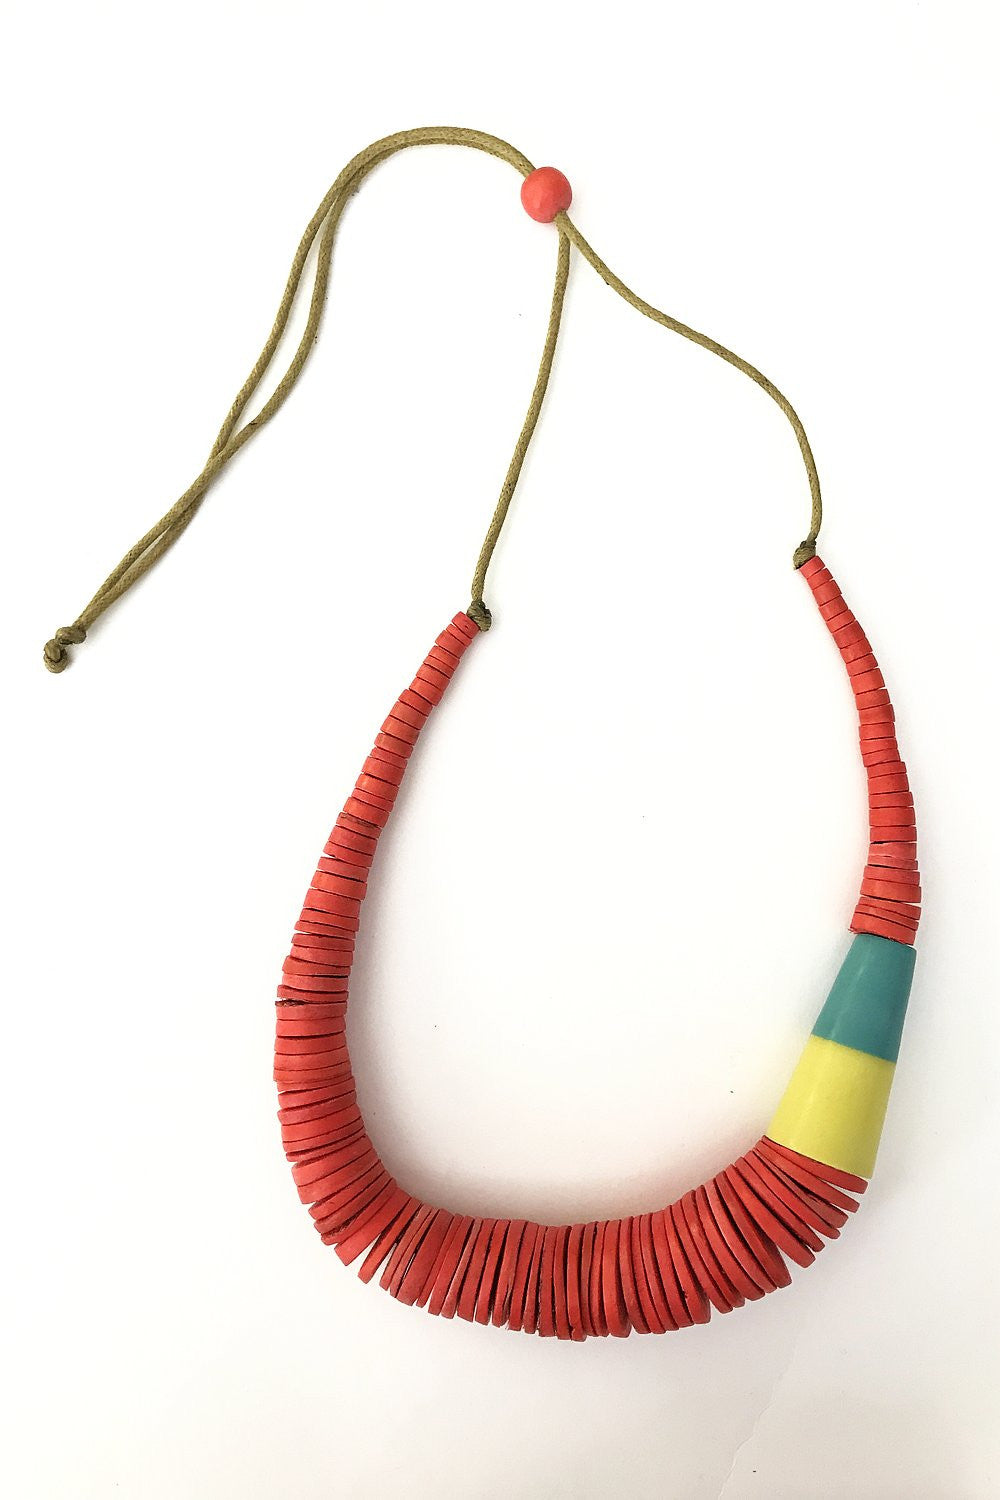 Red Wooden Necklace - at I Love Tunics @ www.ilovetunics.com = Number One! Tunics Destination